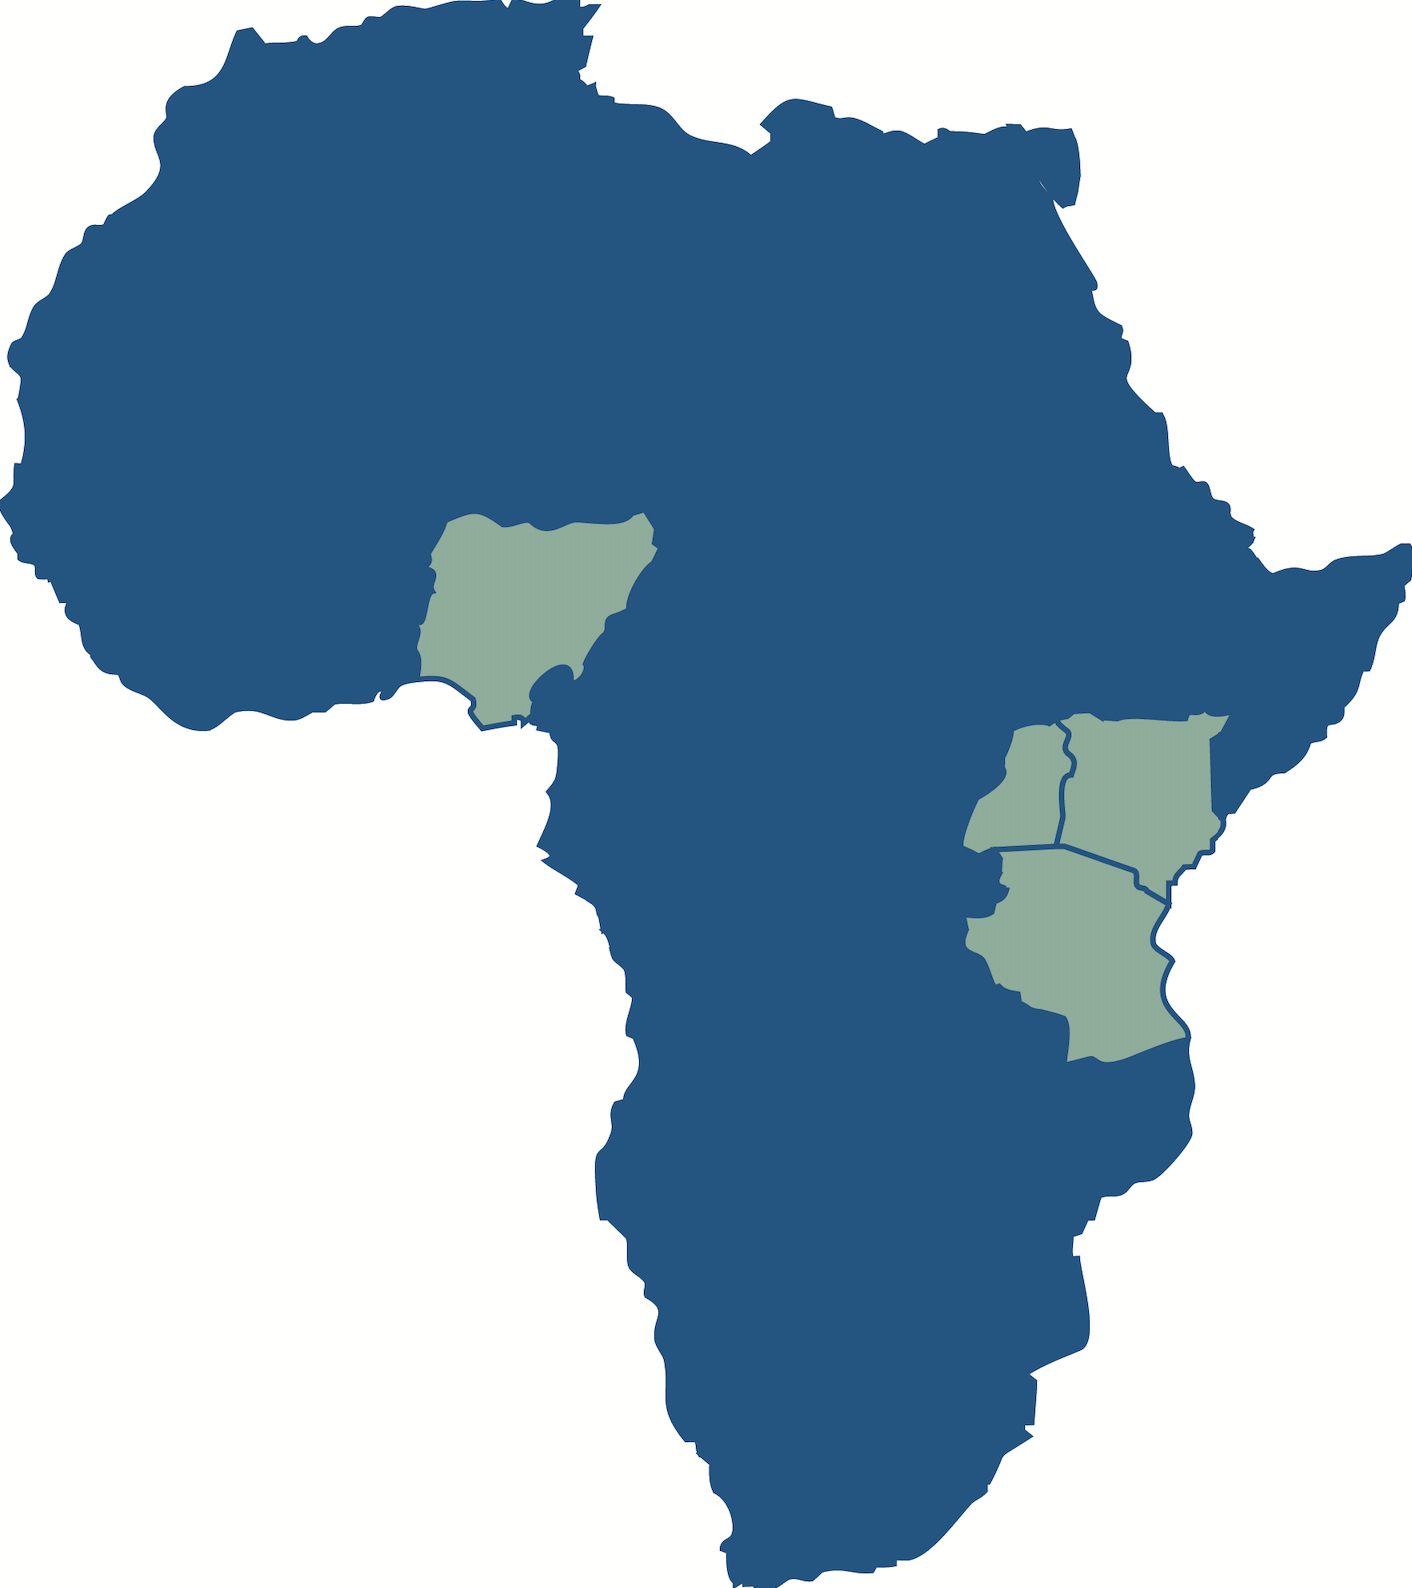 Map of PEPFAR Sites in Africa